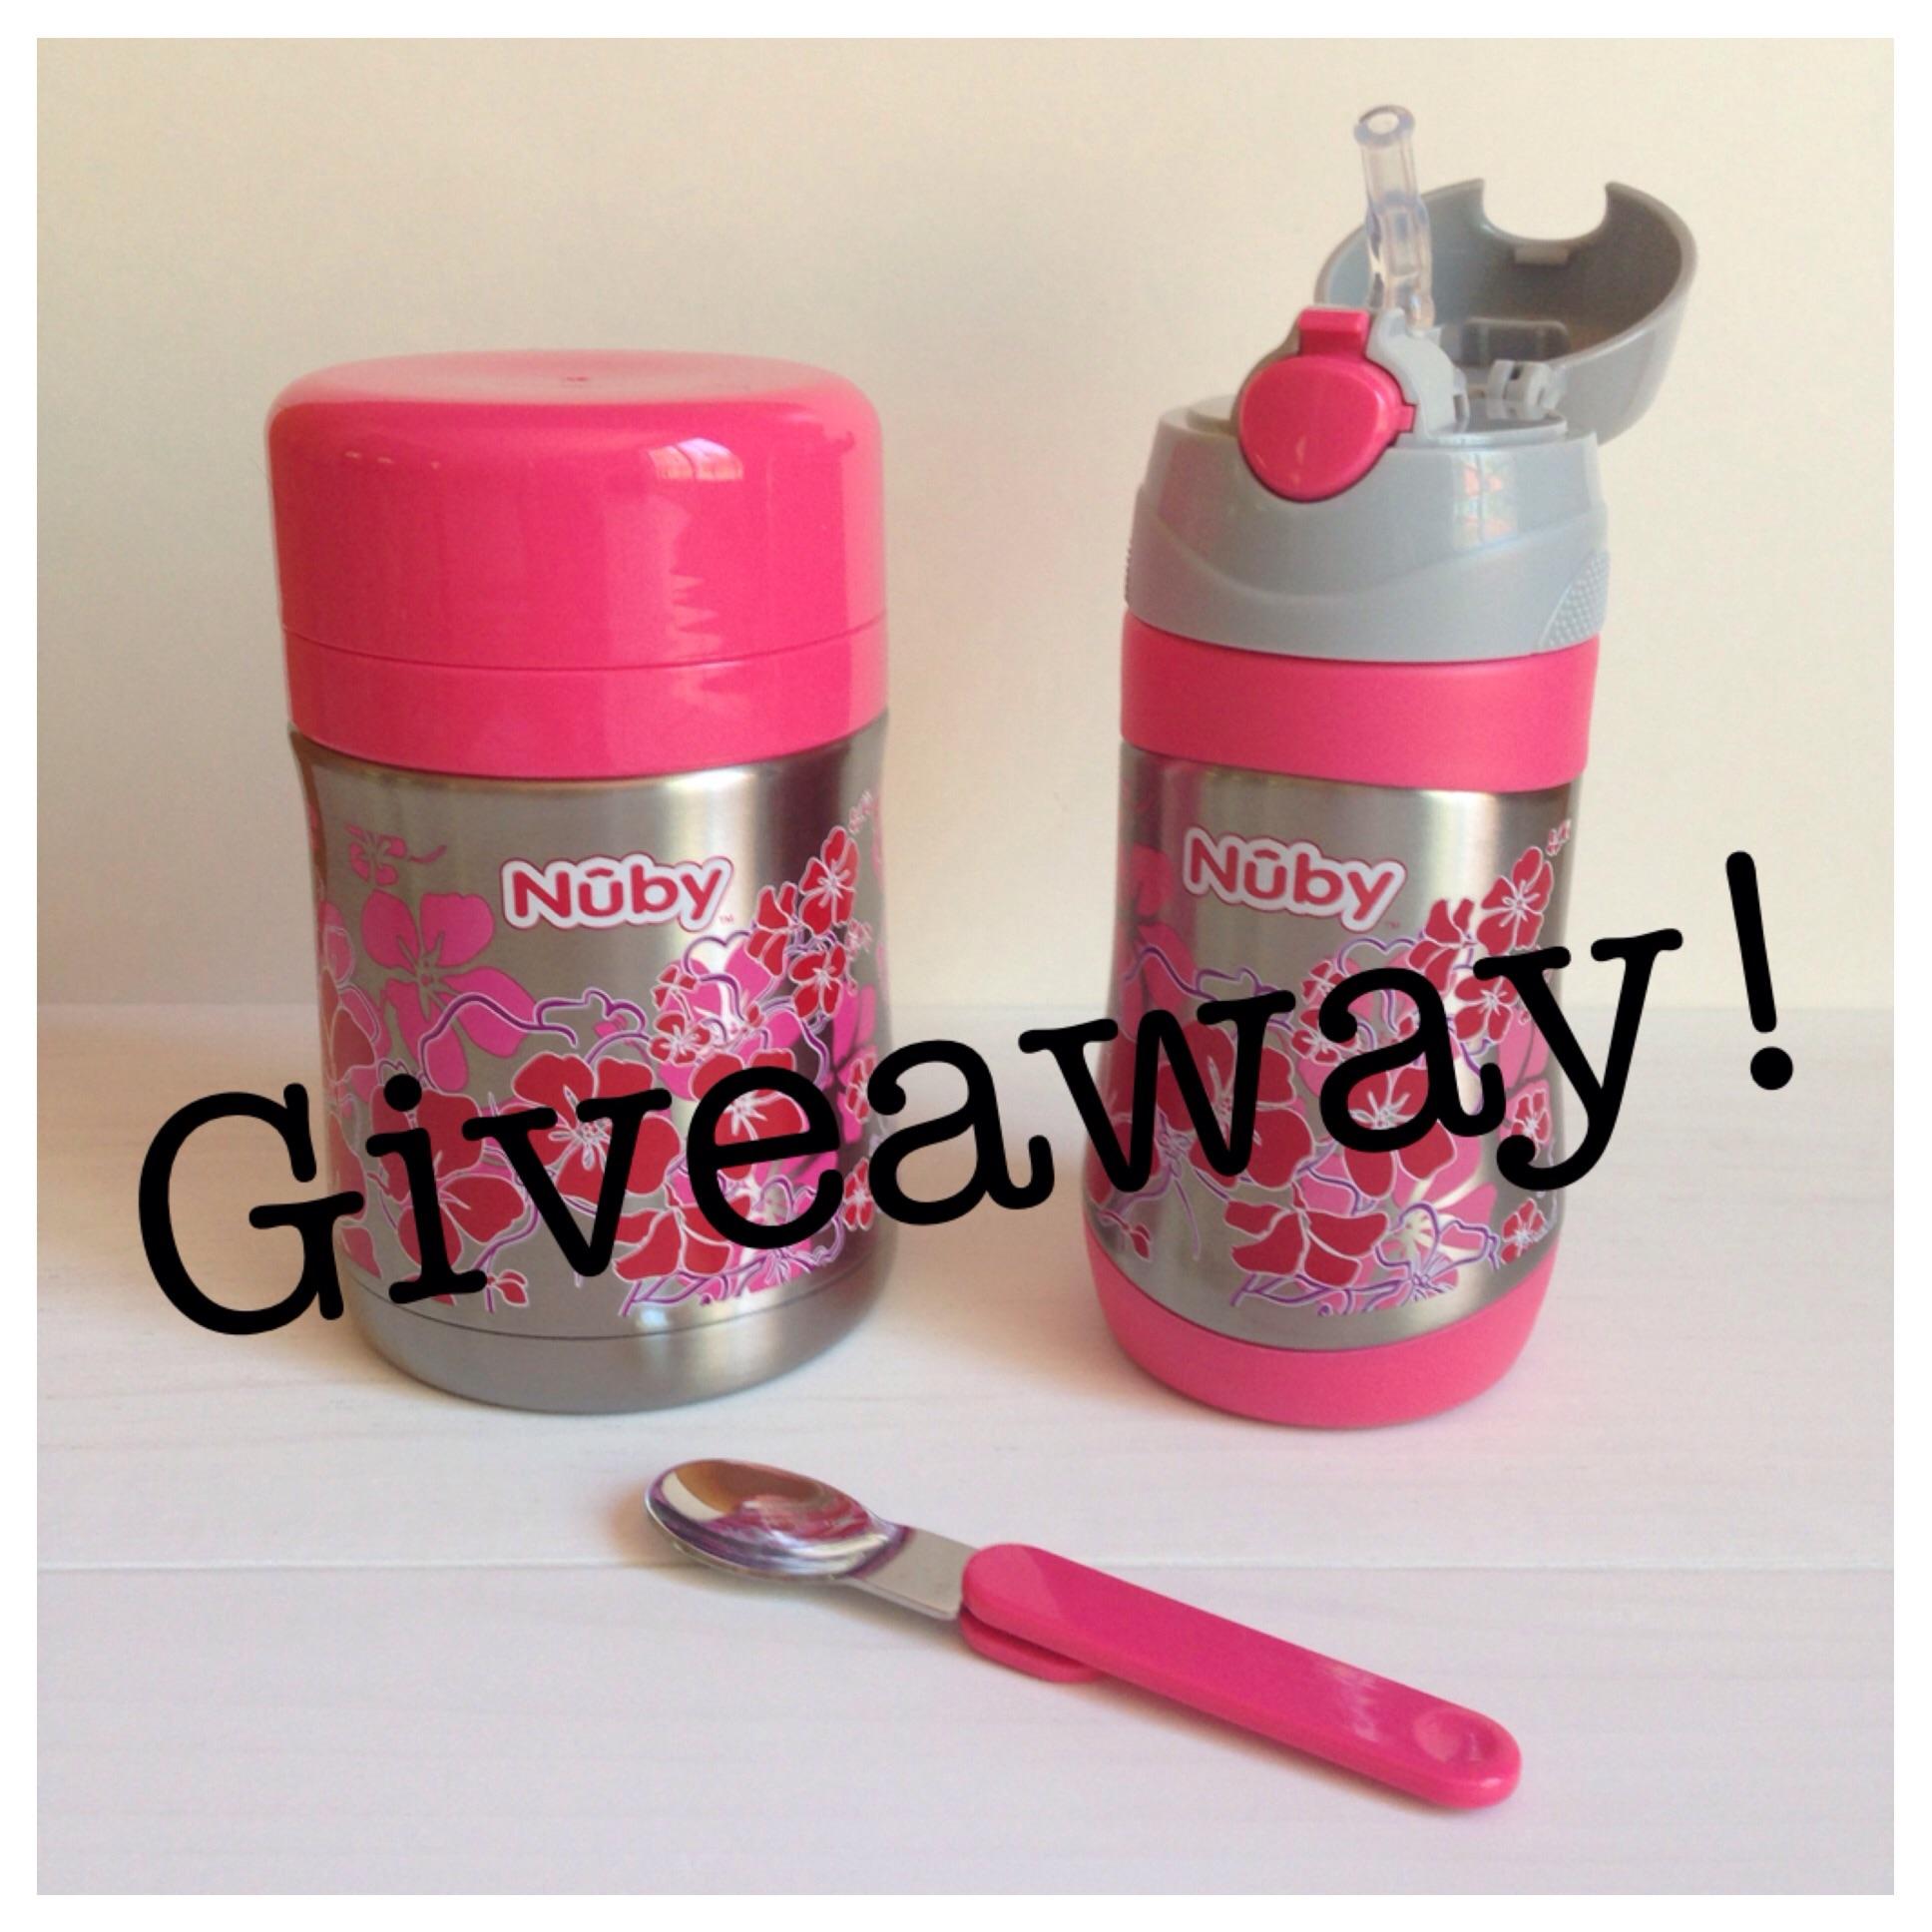 Giveaway ends 11/25/15 at 1PM EST.